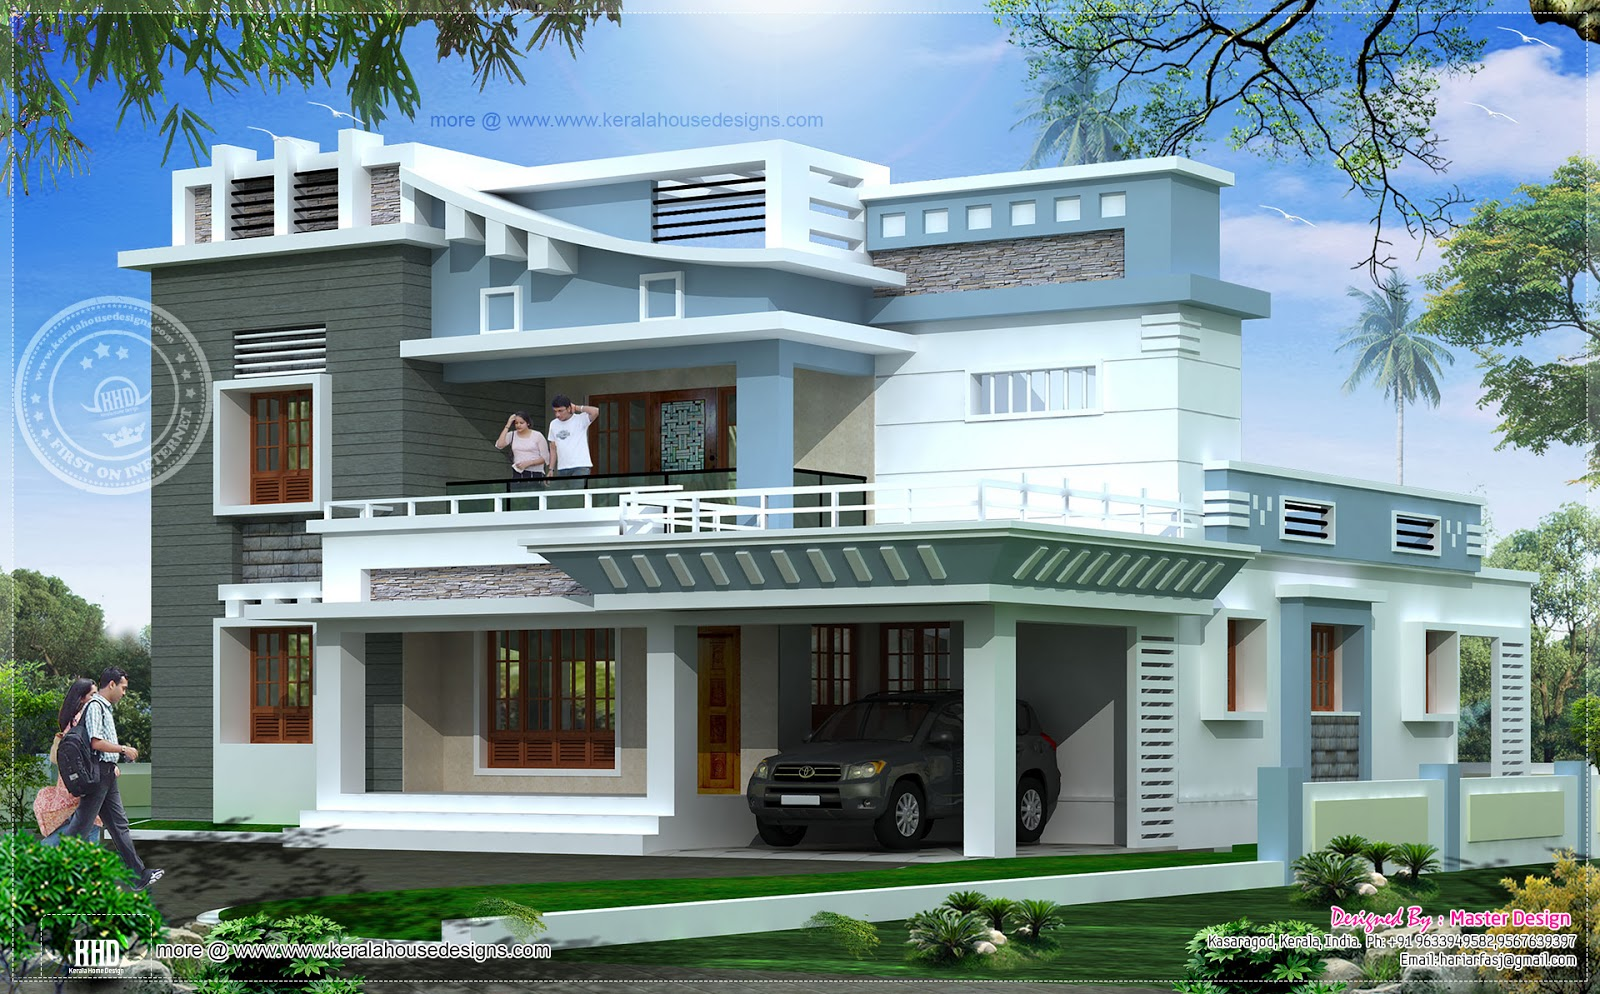 2547 square feet exterior home elevation house design plans for Building front design